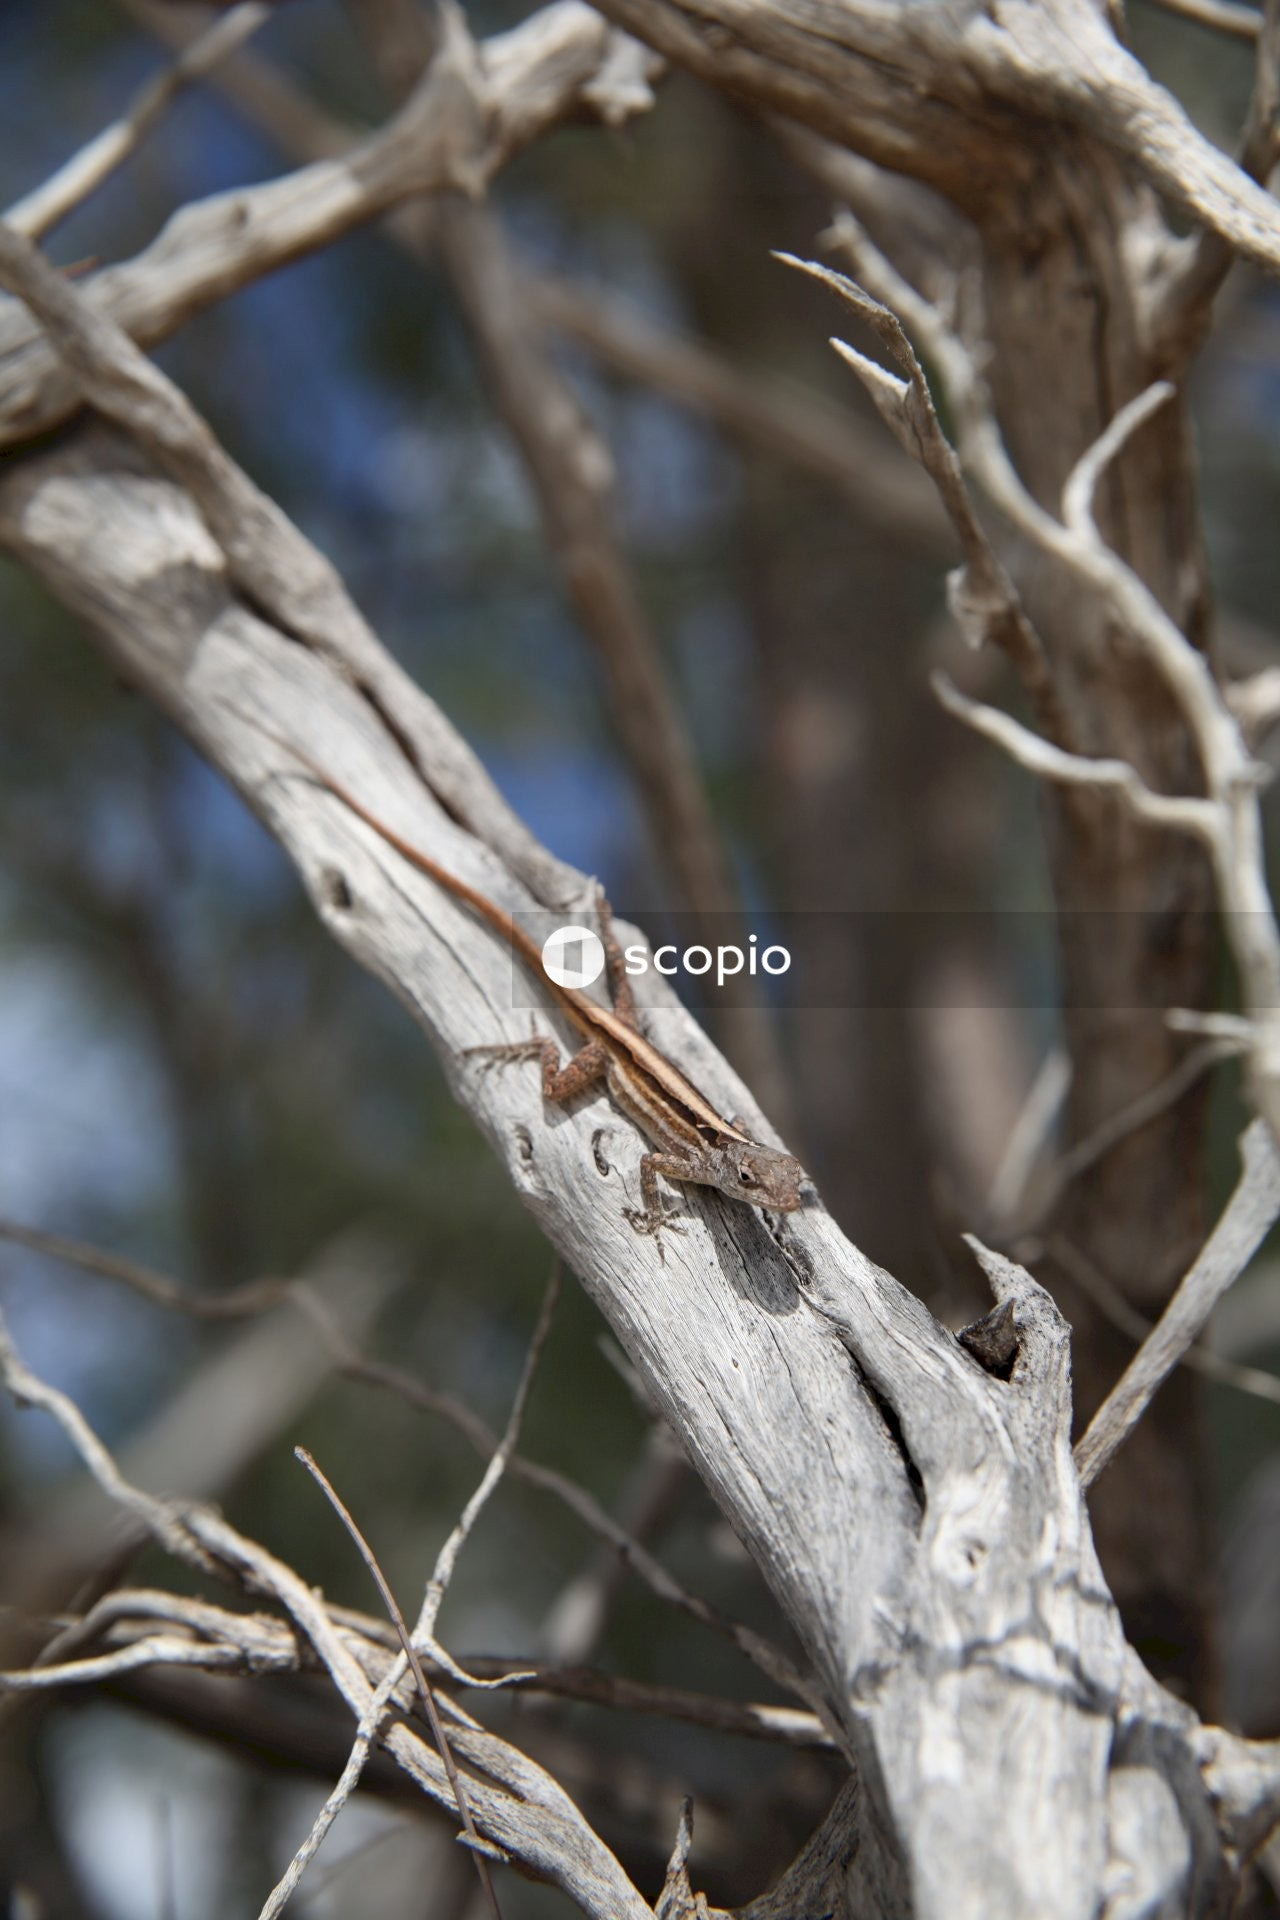 Brown and white lizard on brown tree branch